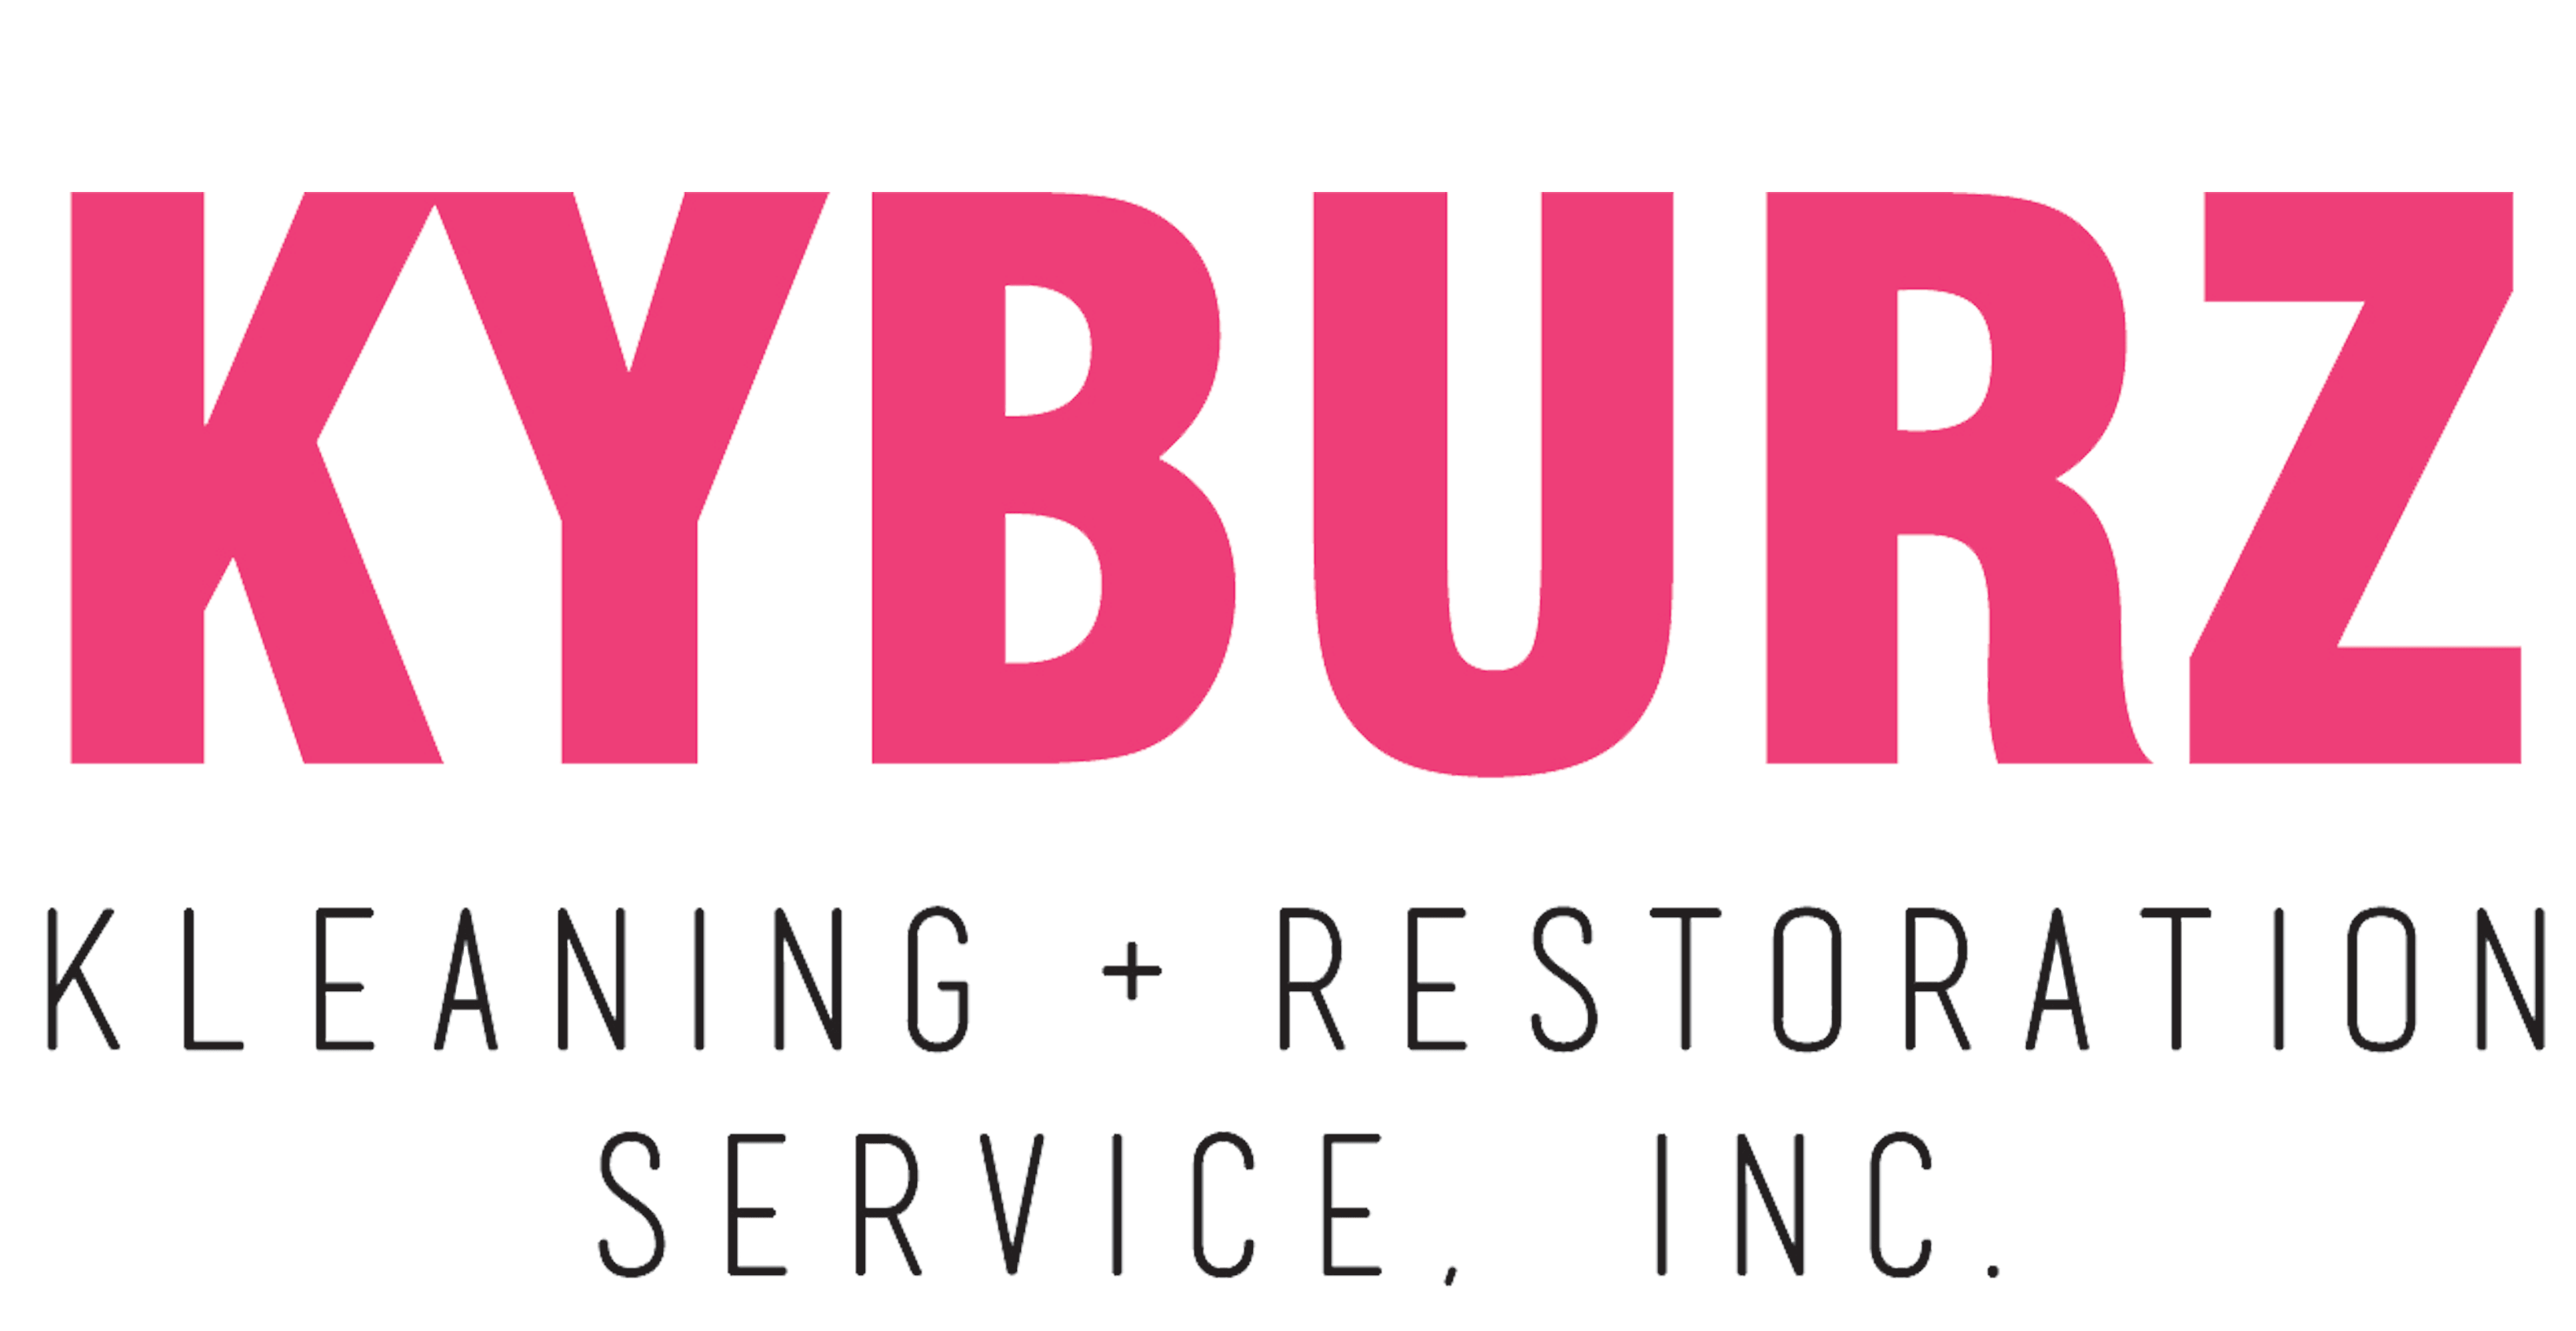 Kyburz Kleaning and Restoration Service